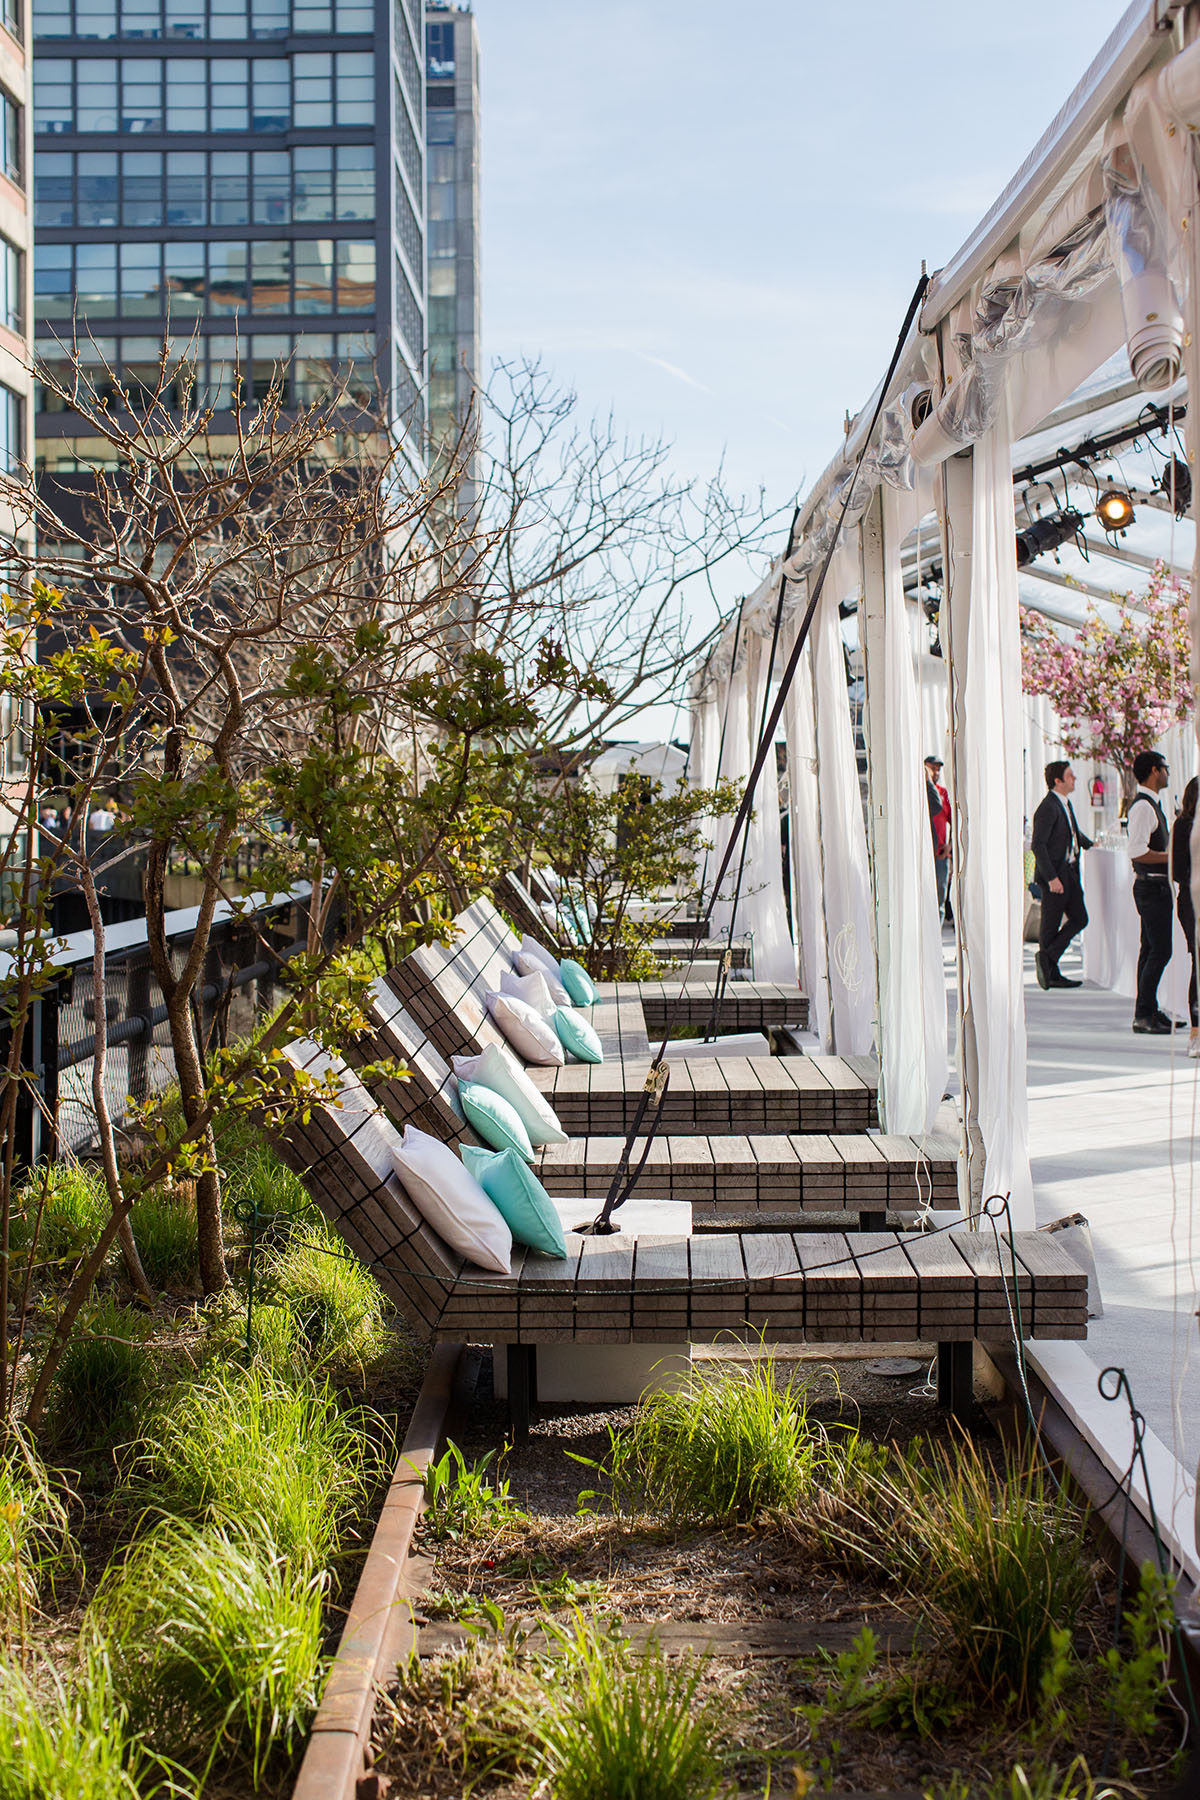 Photo #7 Diller - von Furstenberg Sundeck  at High Line - Chelsea Market Passage